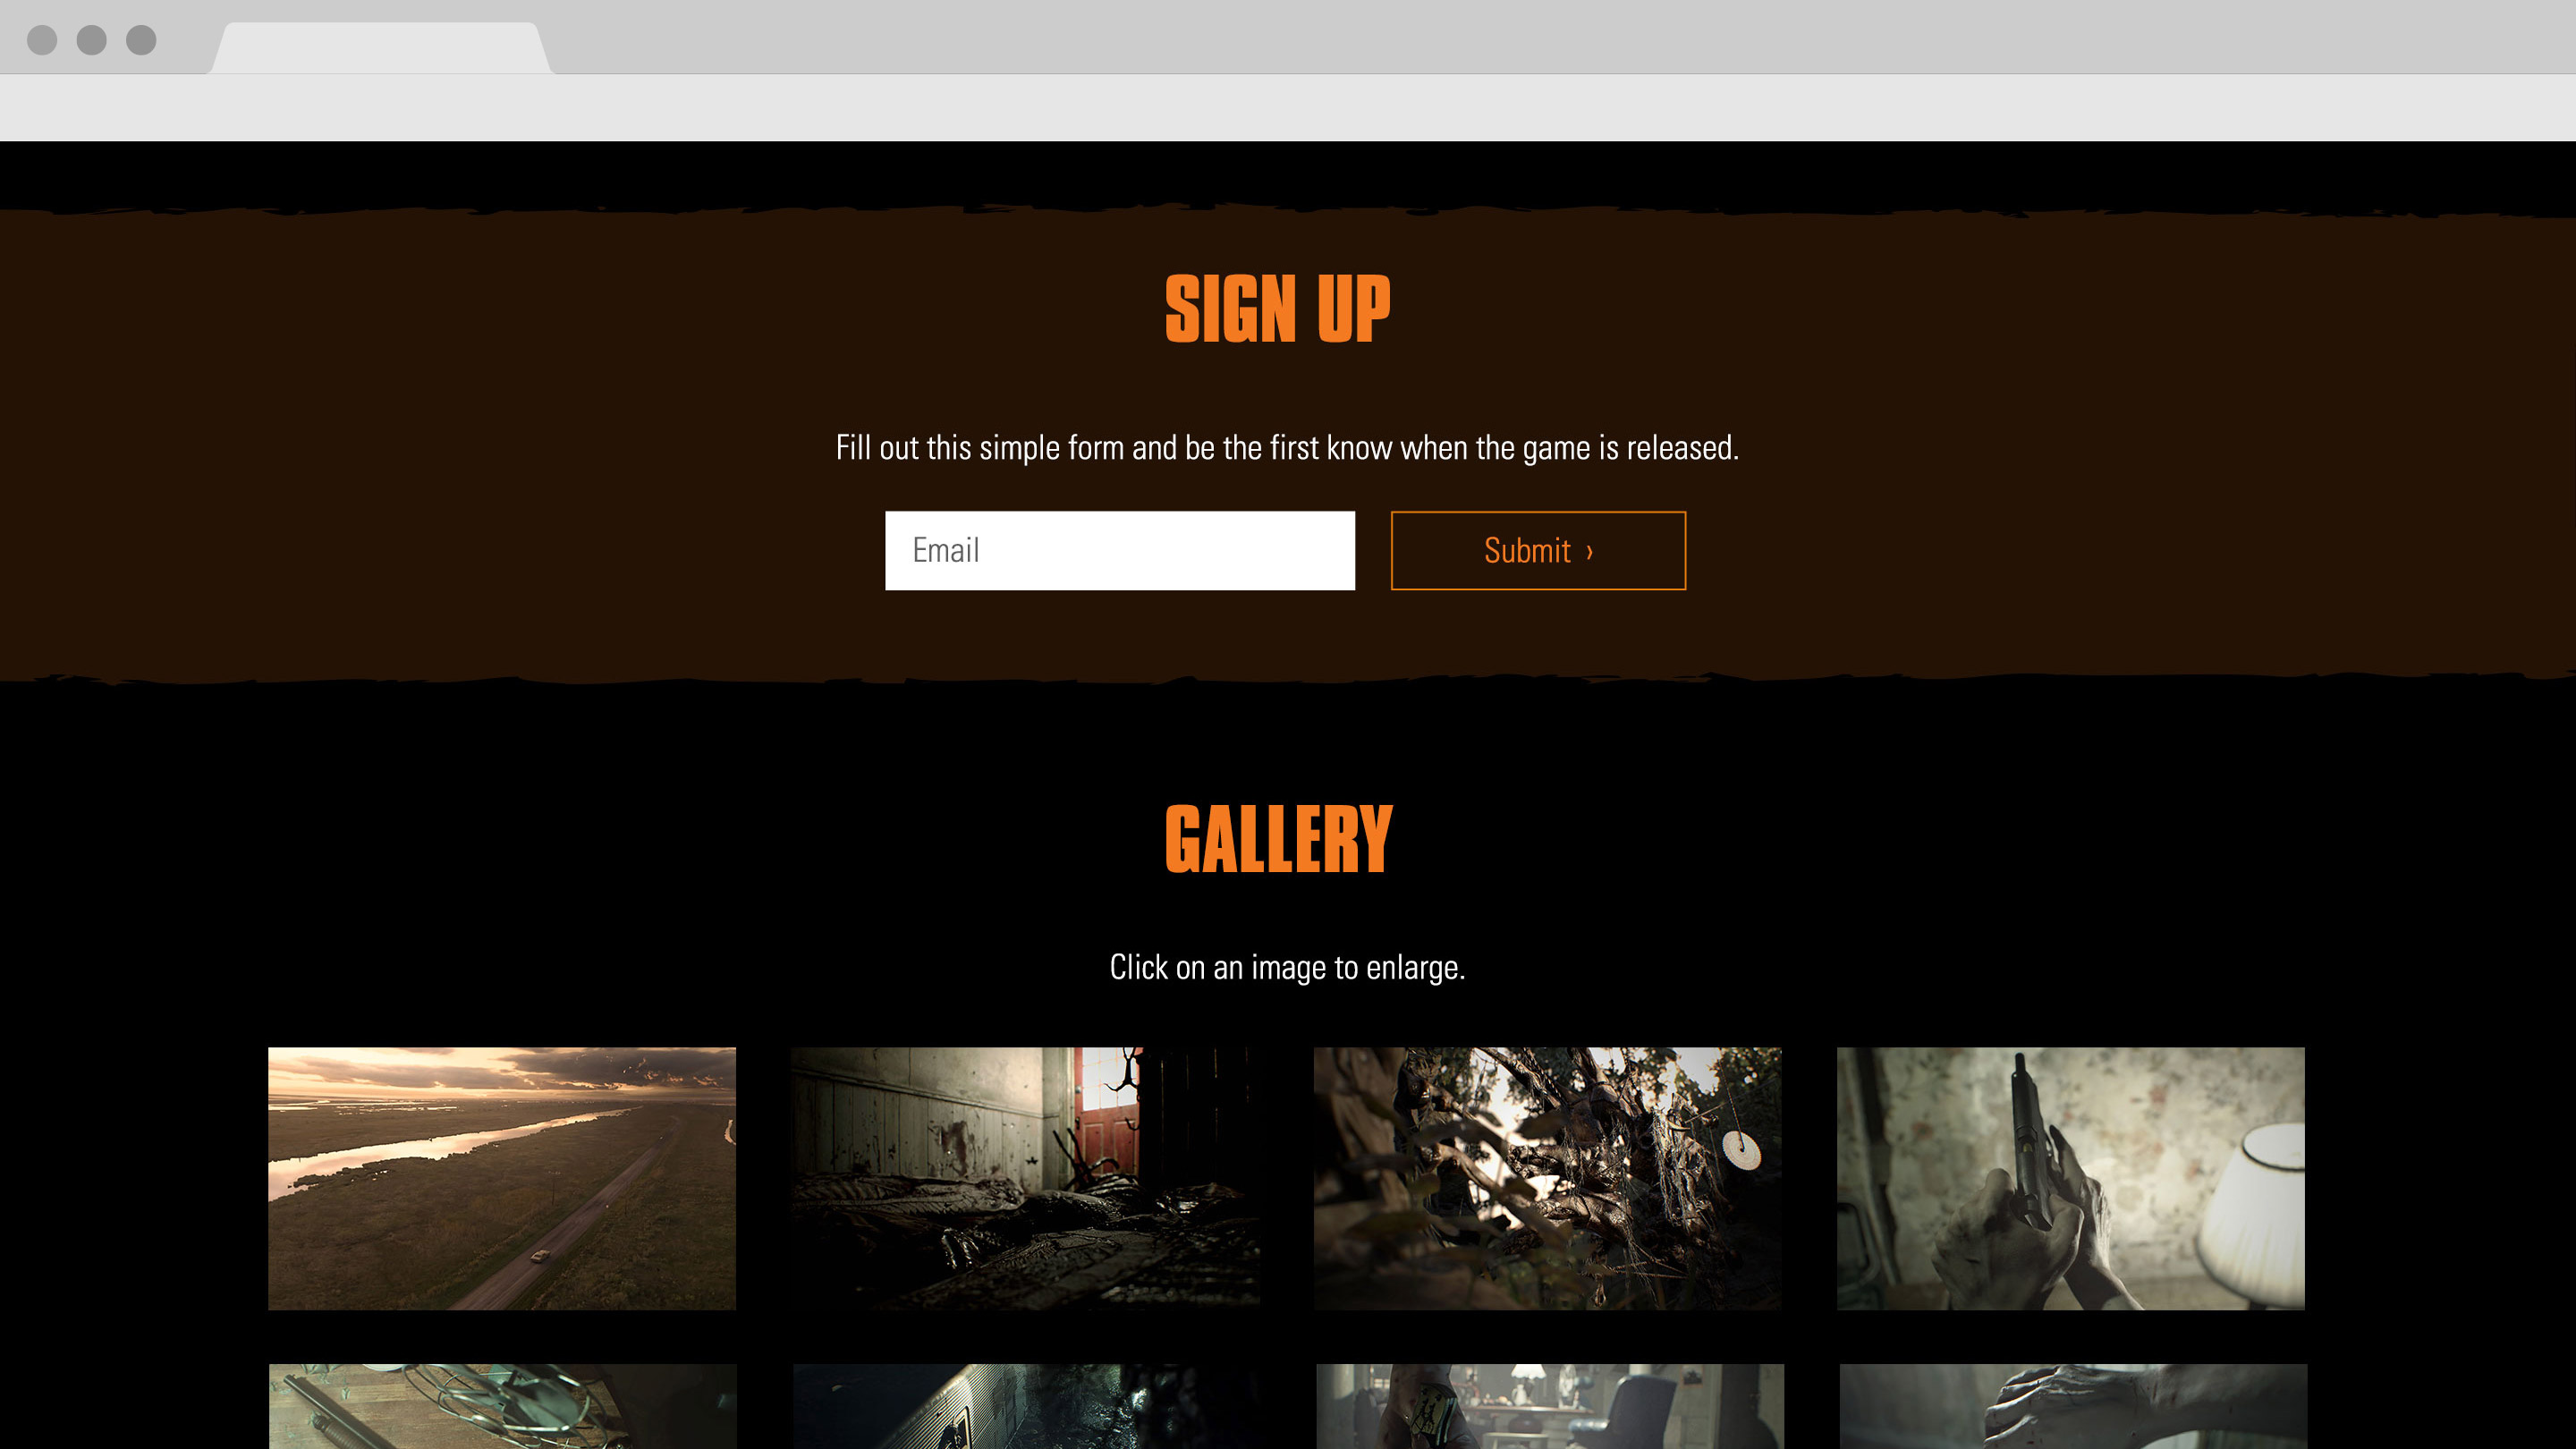 ResidentEvil_sign-up-gallery